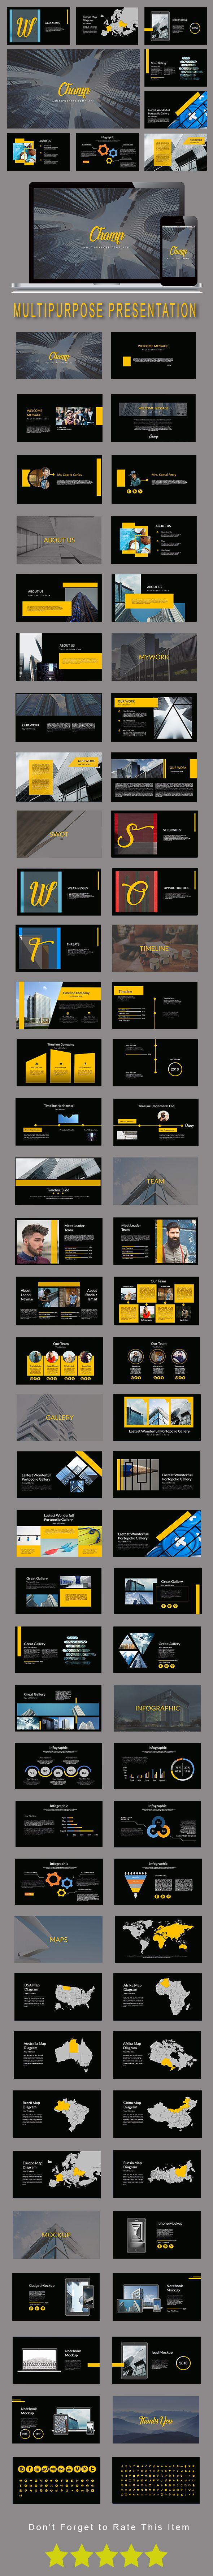 Champ Multipurpose Powerpoint Template | TEMPLATE | Power Point ...